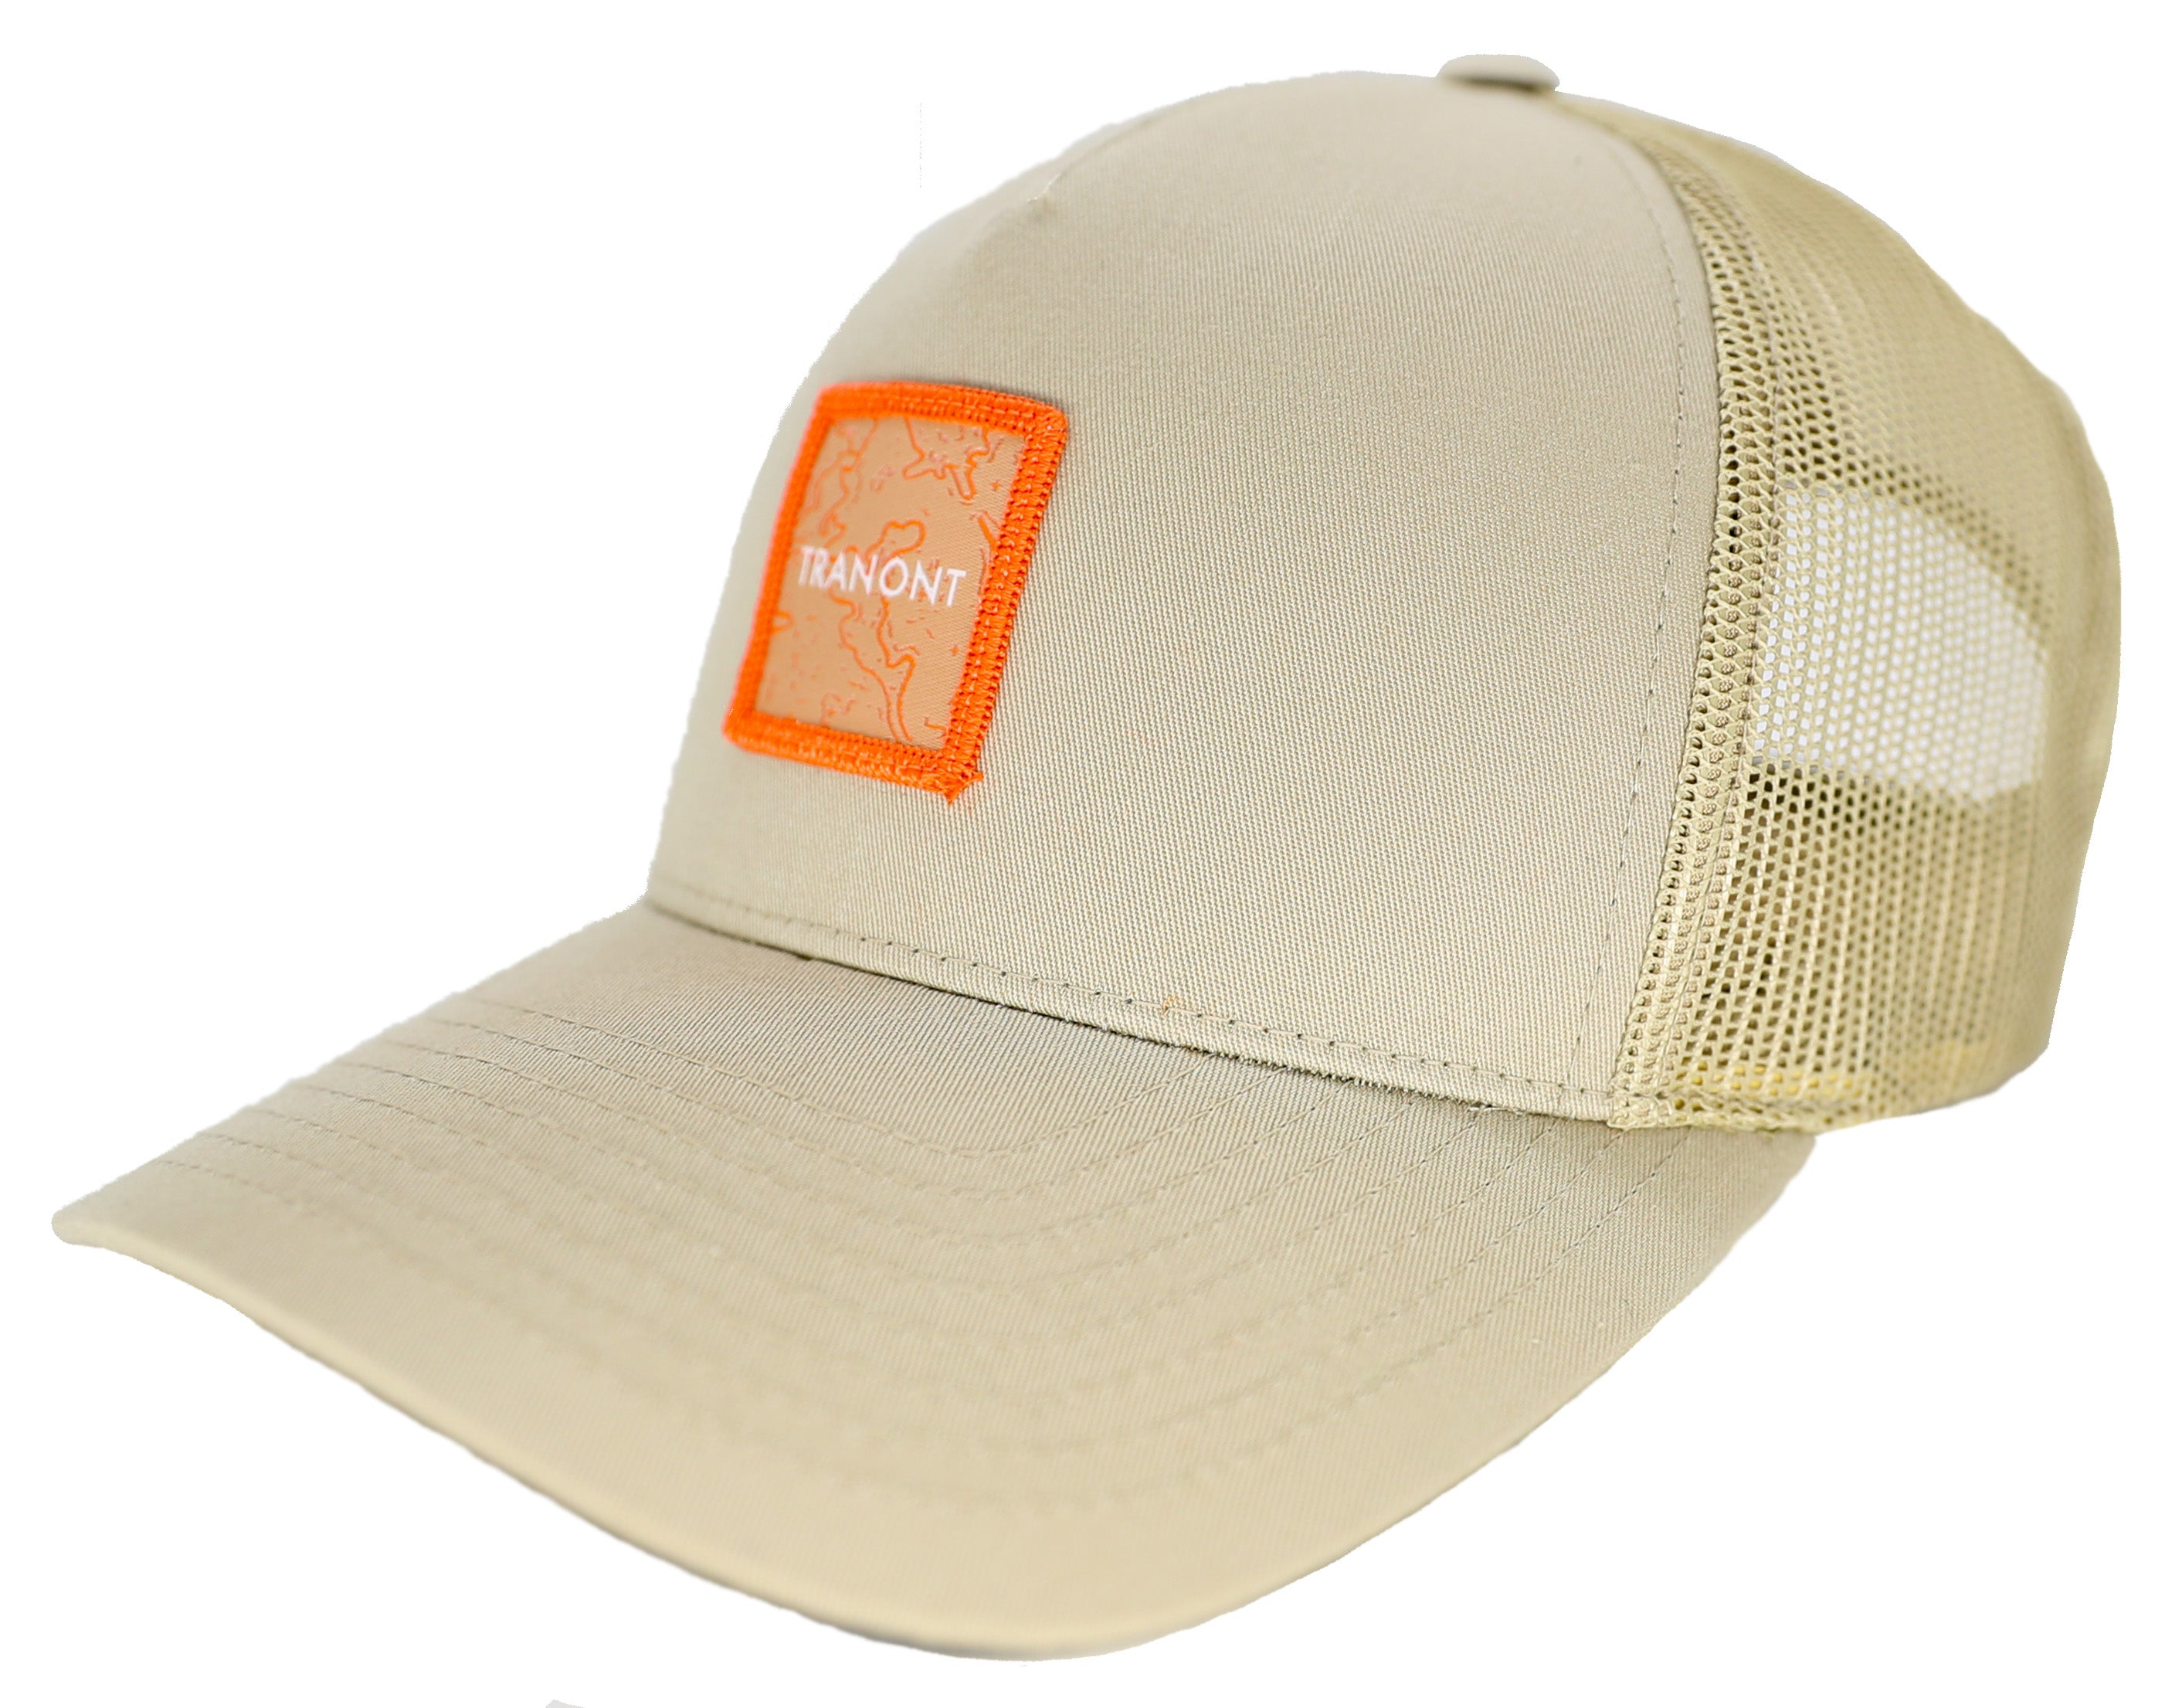 Tranont Mineral Hat